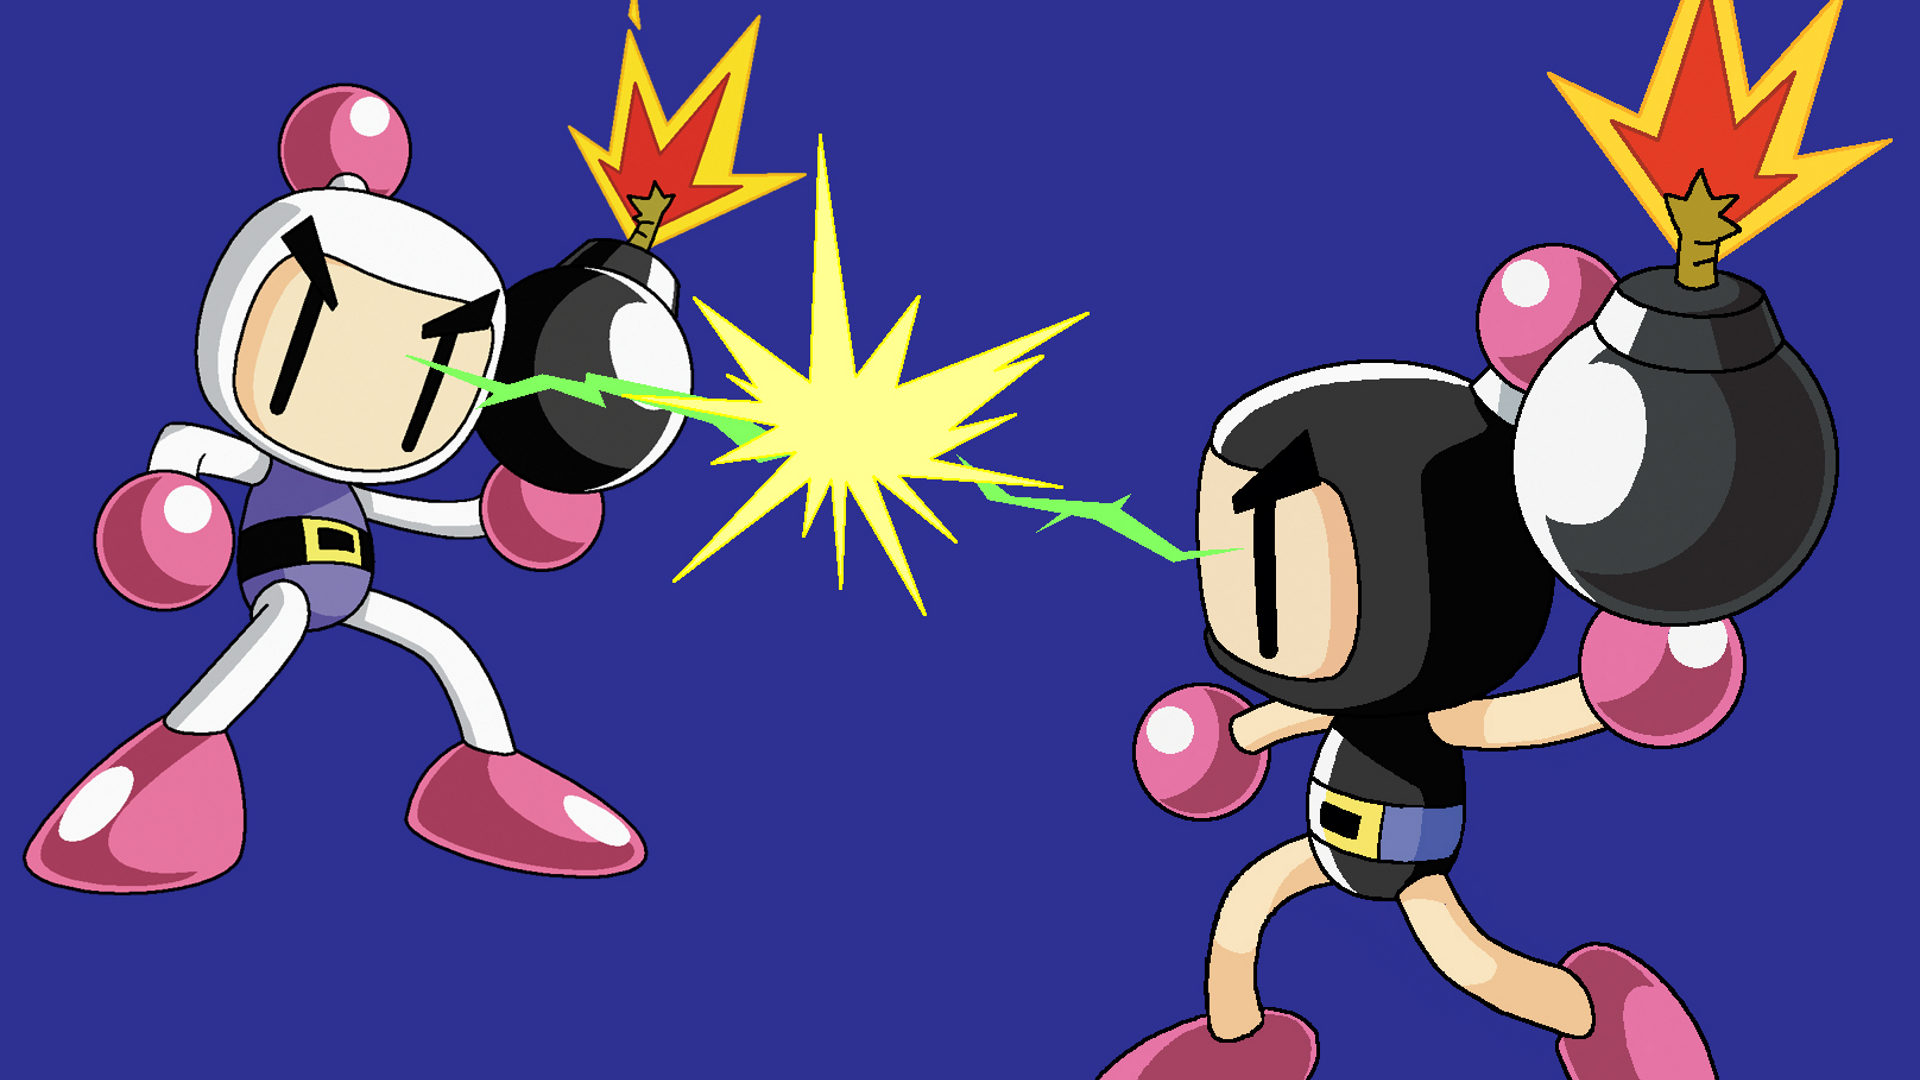 Family Party Games >> Super Bomberman Details - LaunchBox Games Database